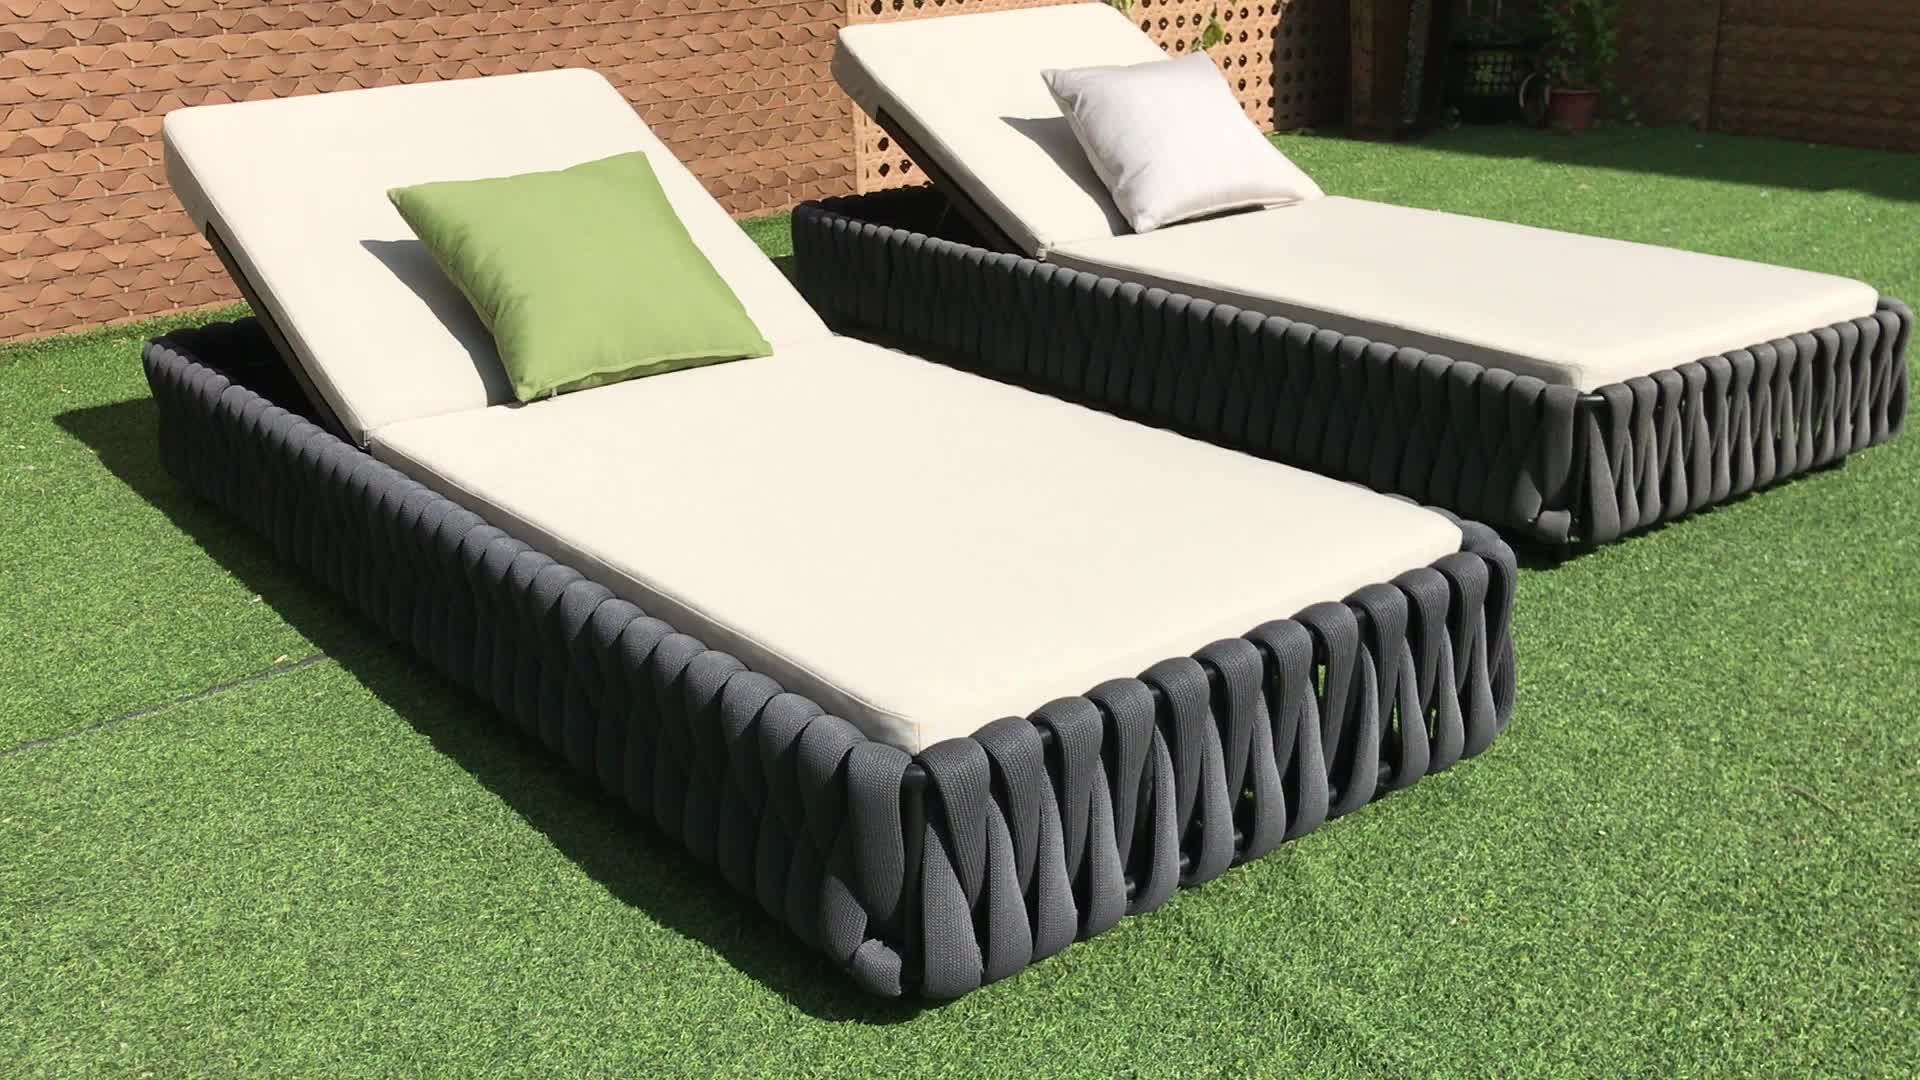 high quality garden lounger hotel outdoor furniture Swimming pool sun bed  rope woven outdoor sun lounger